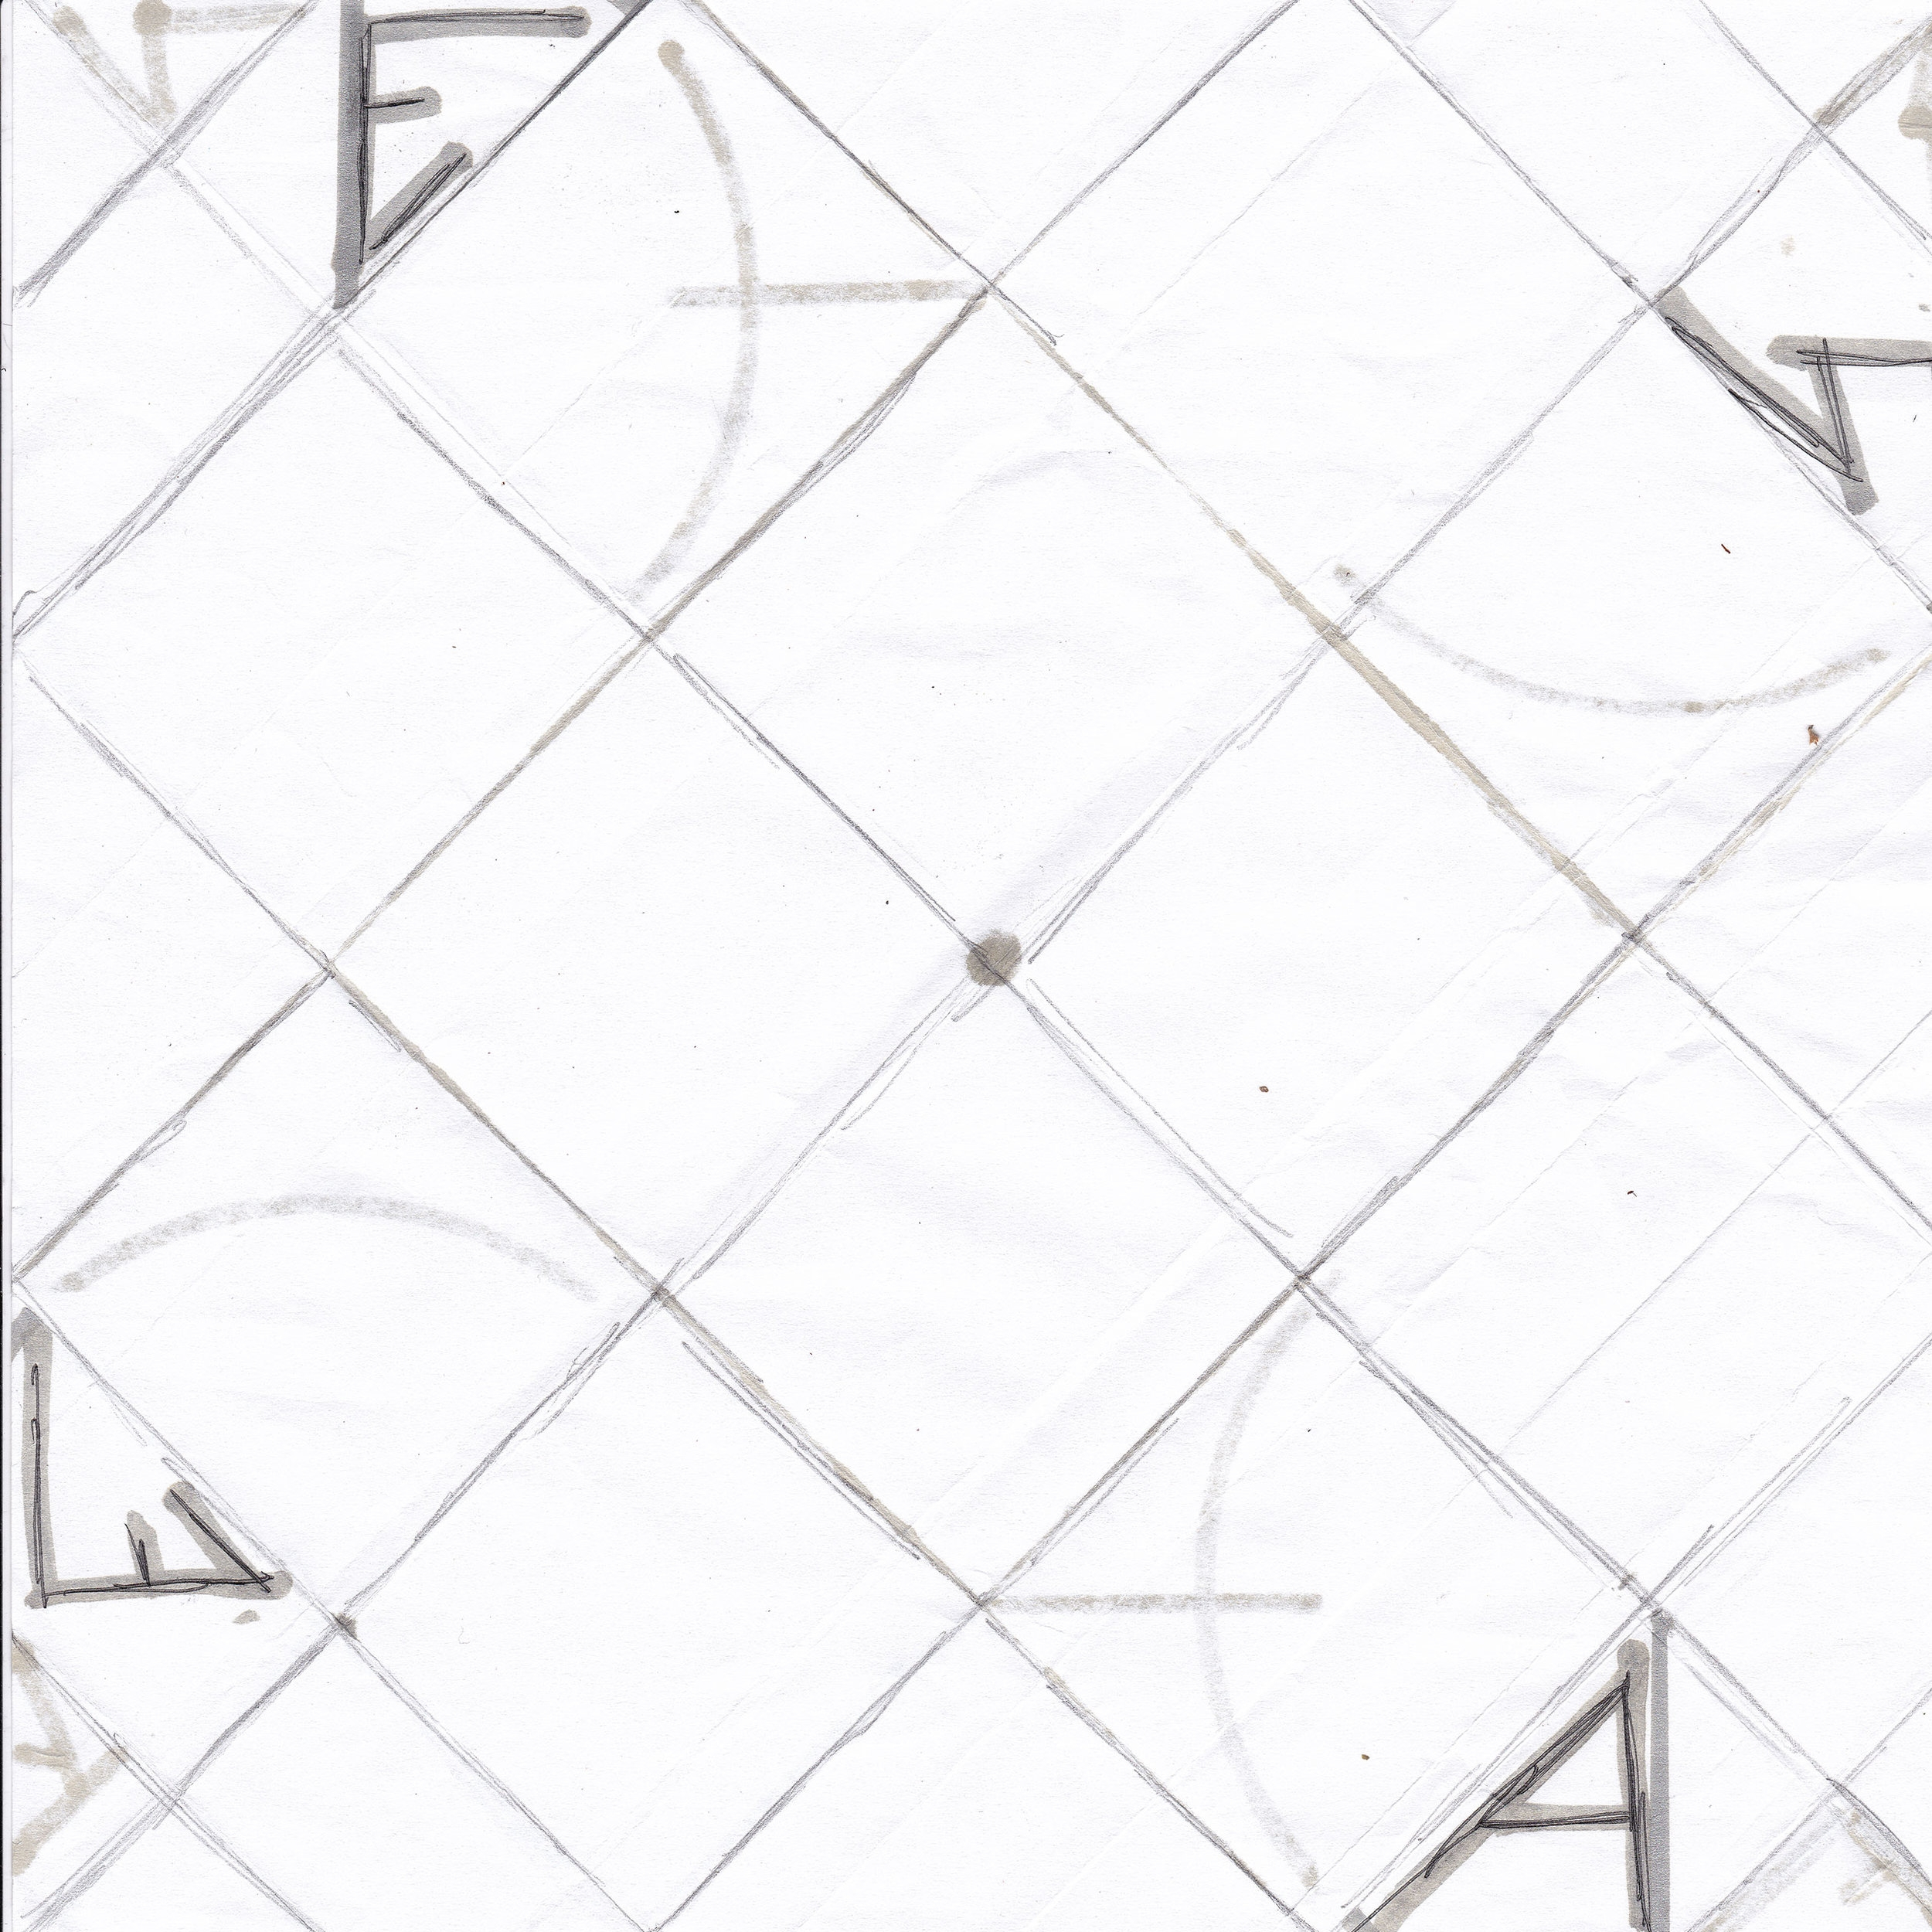 scanned image - Here I penciled in the folds and scanned the design front and back.